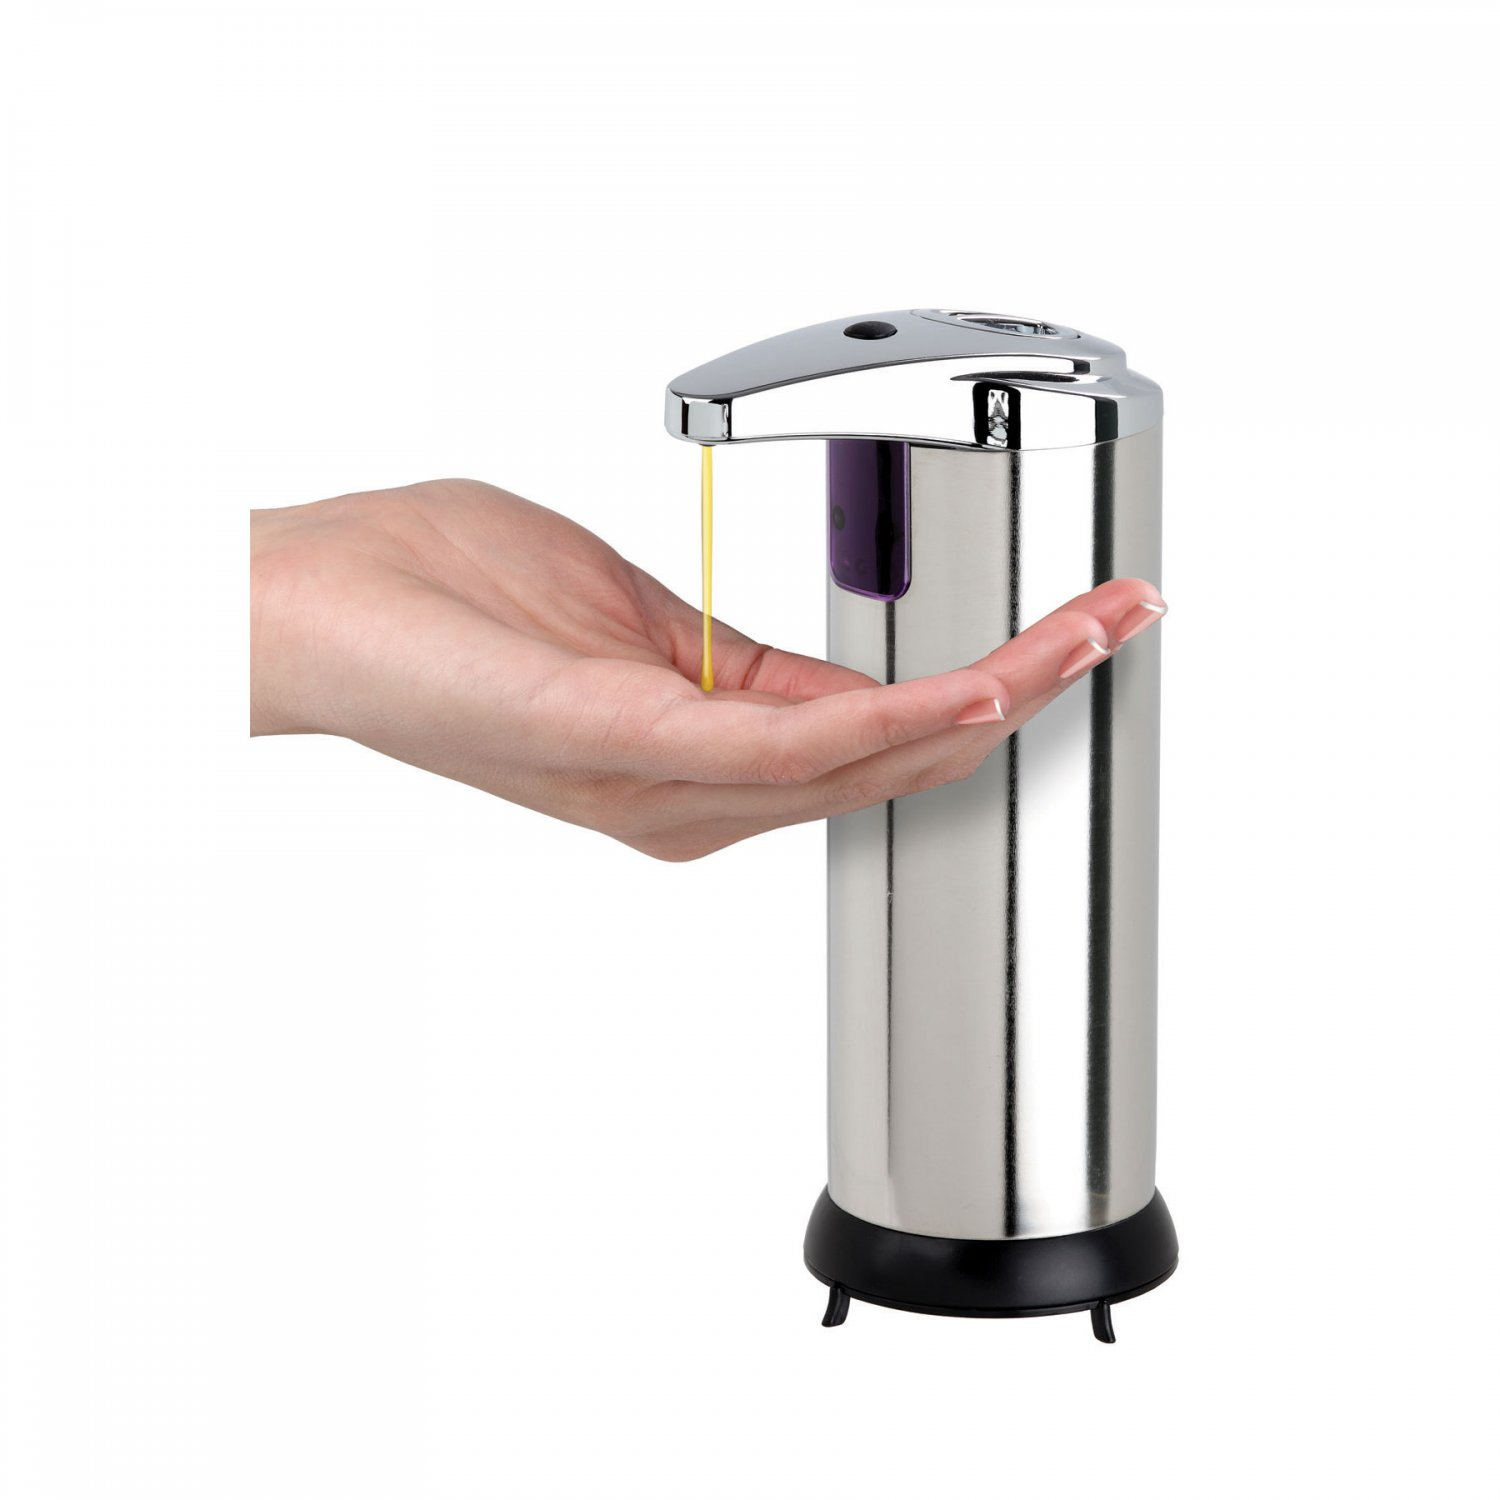 Black Automatic Soap Dispenser Touchless Automatic Handsfree Soap Dispenser Chrome